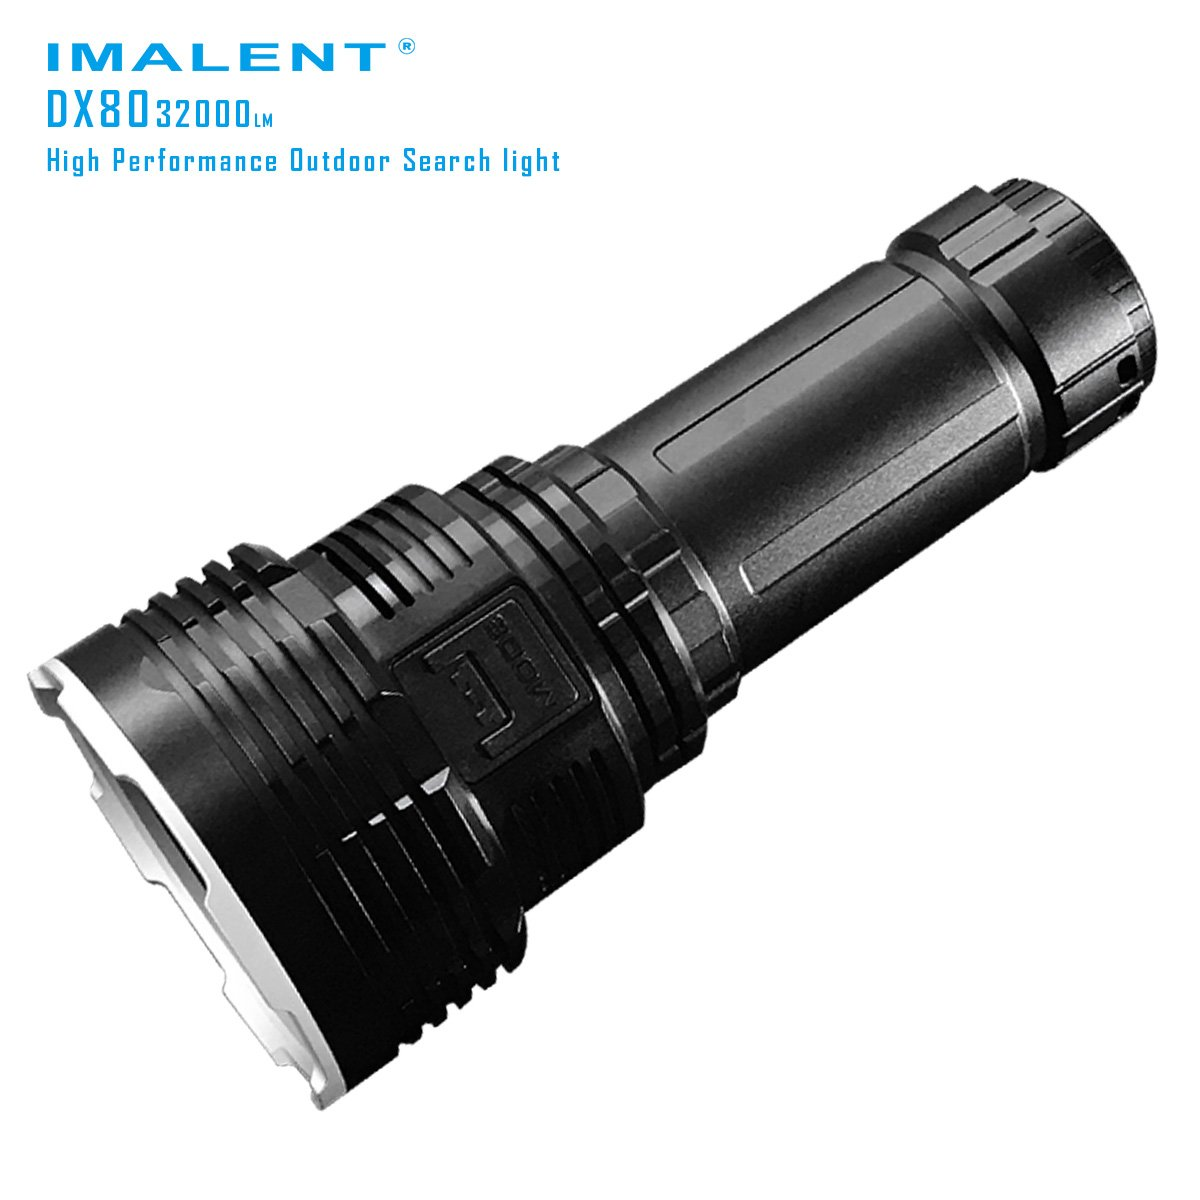 IMALENT DX80 32000 lumens with rechargeable battery pack 8pcs CREE XHP70 LEDs powerful flood LED search flashlight